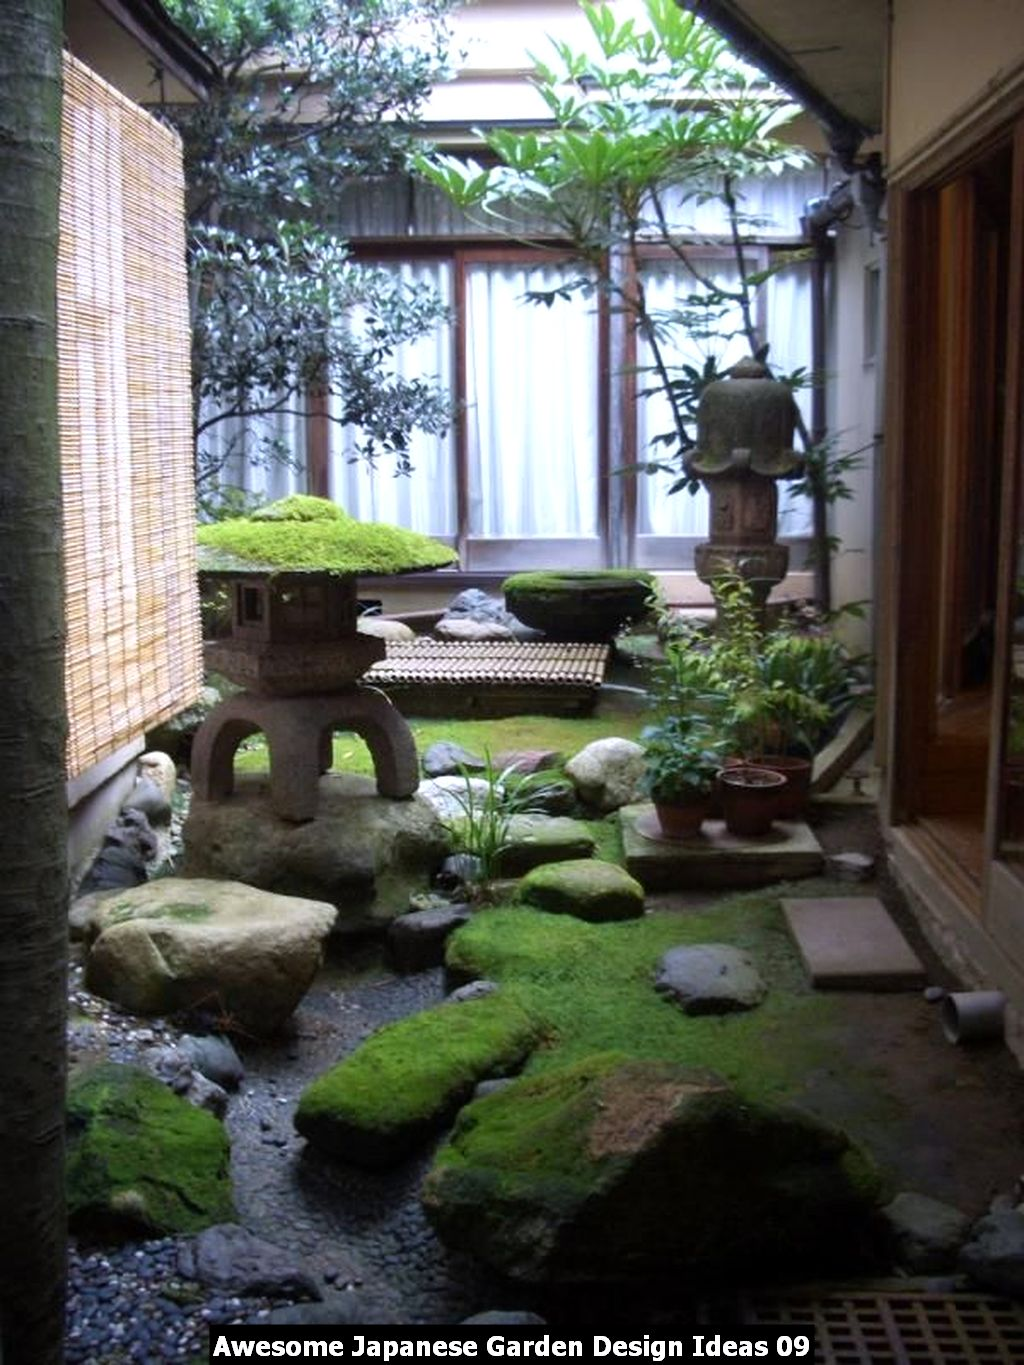 Awesome Japanese Garden Design Ideas 09